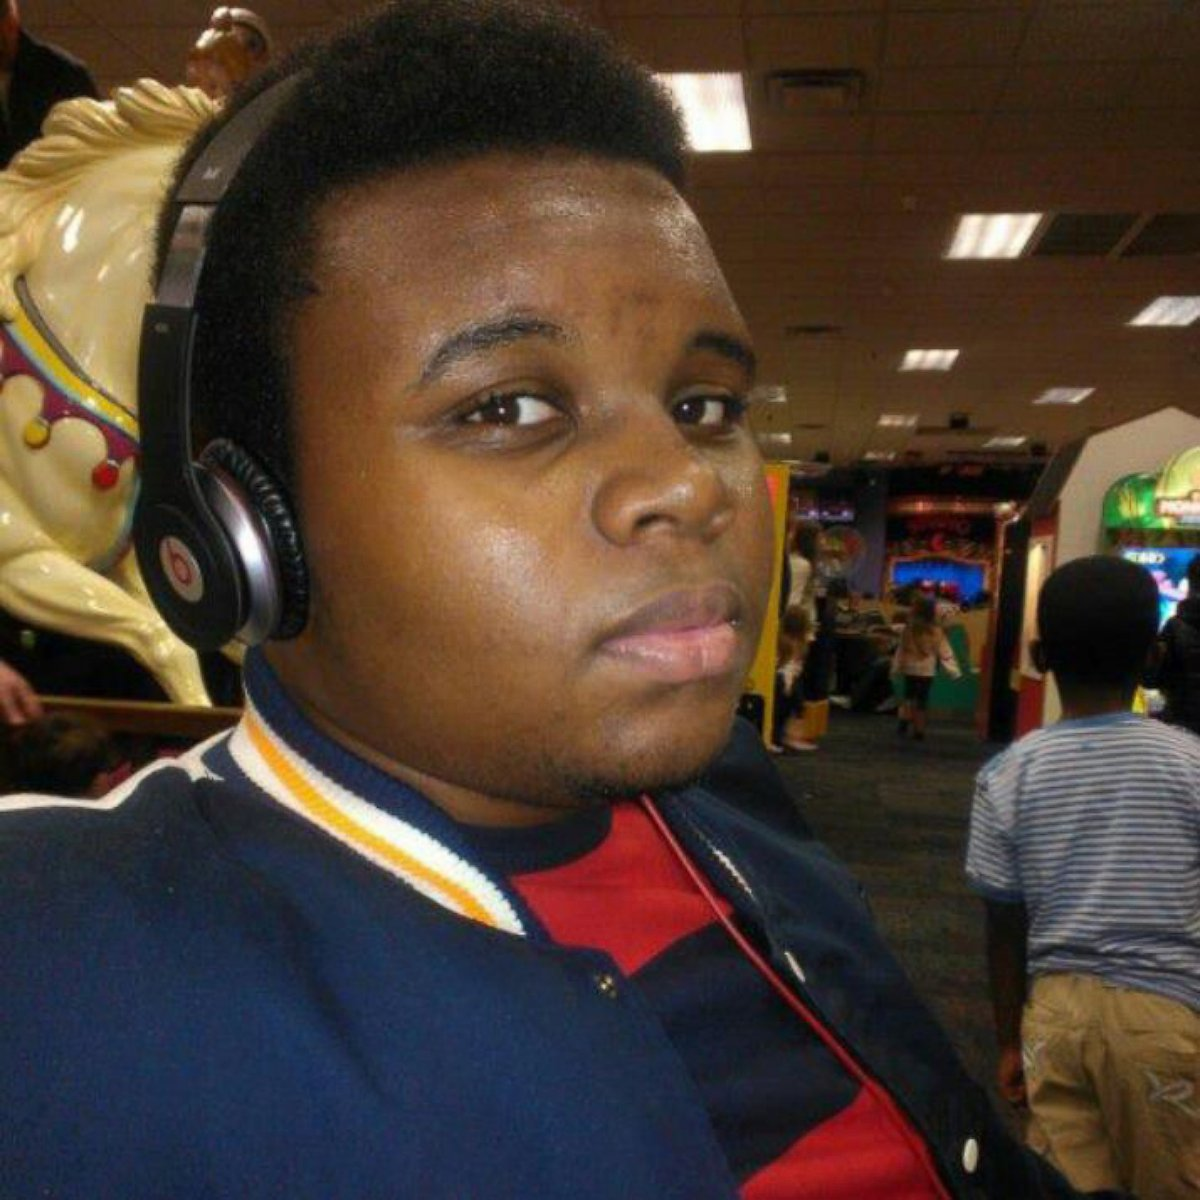 Family of Michael Brown settles its lawsuit against Ferguson for $1.5 million.